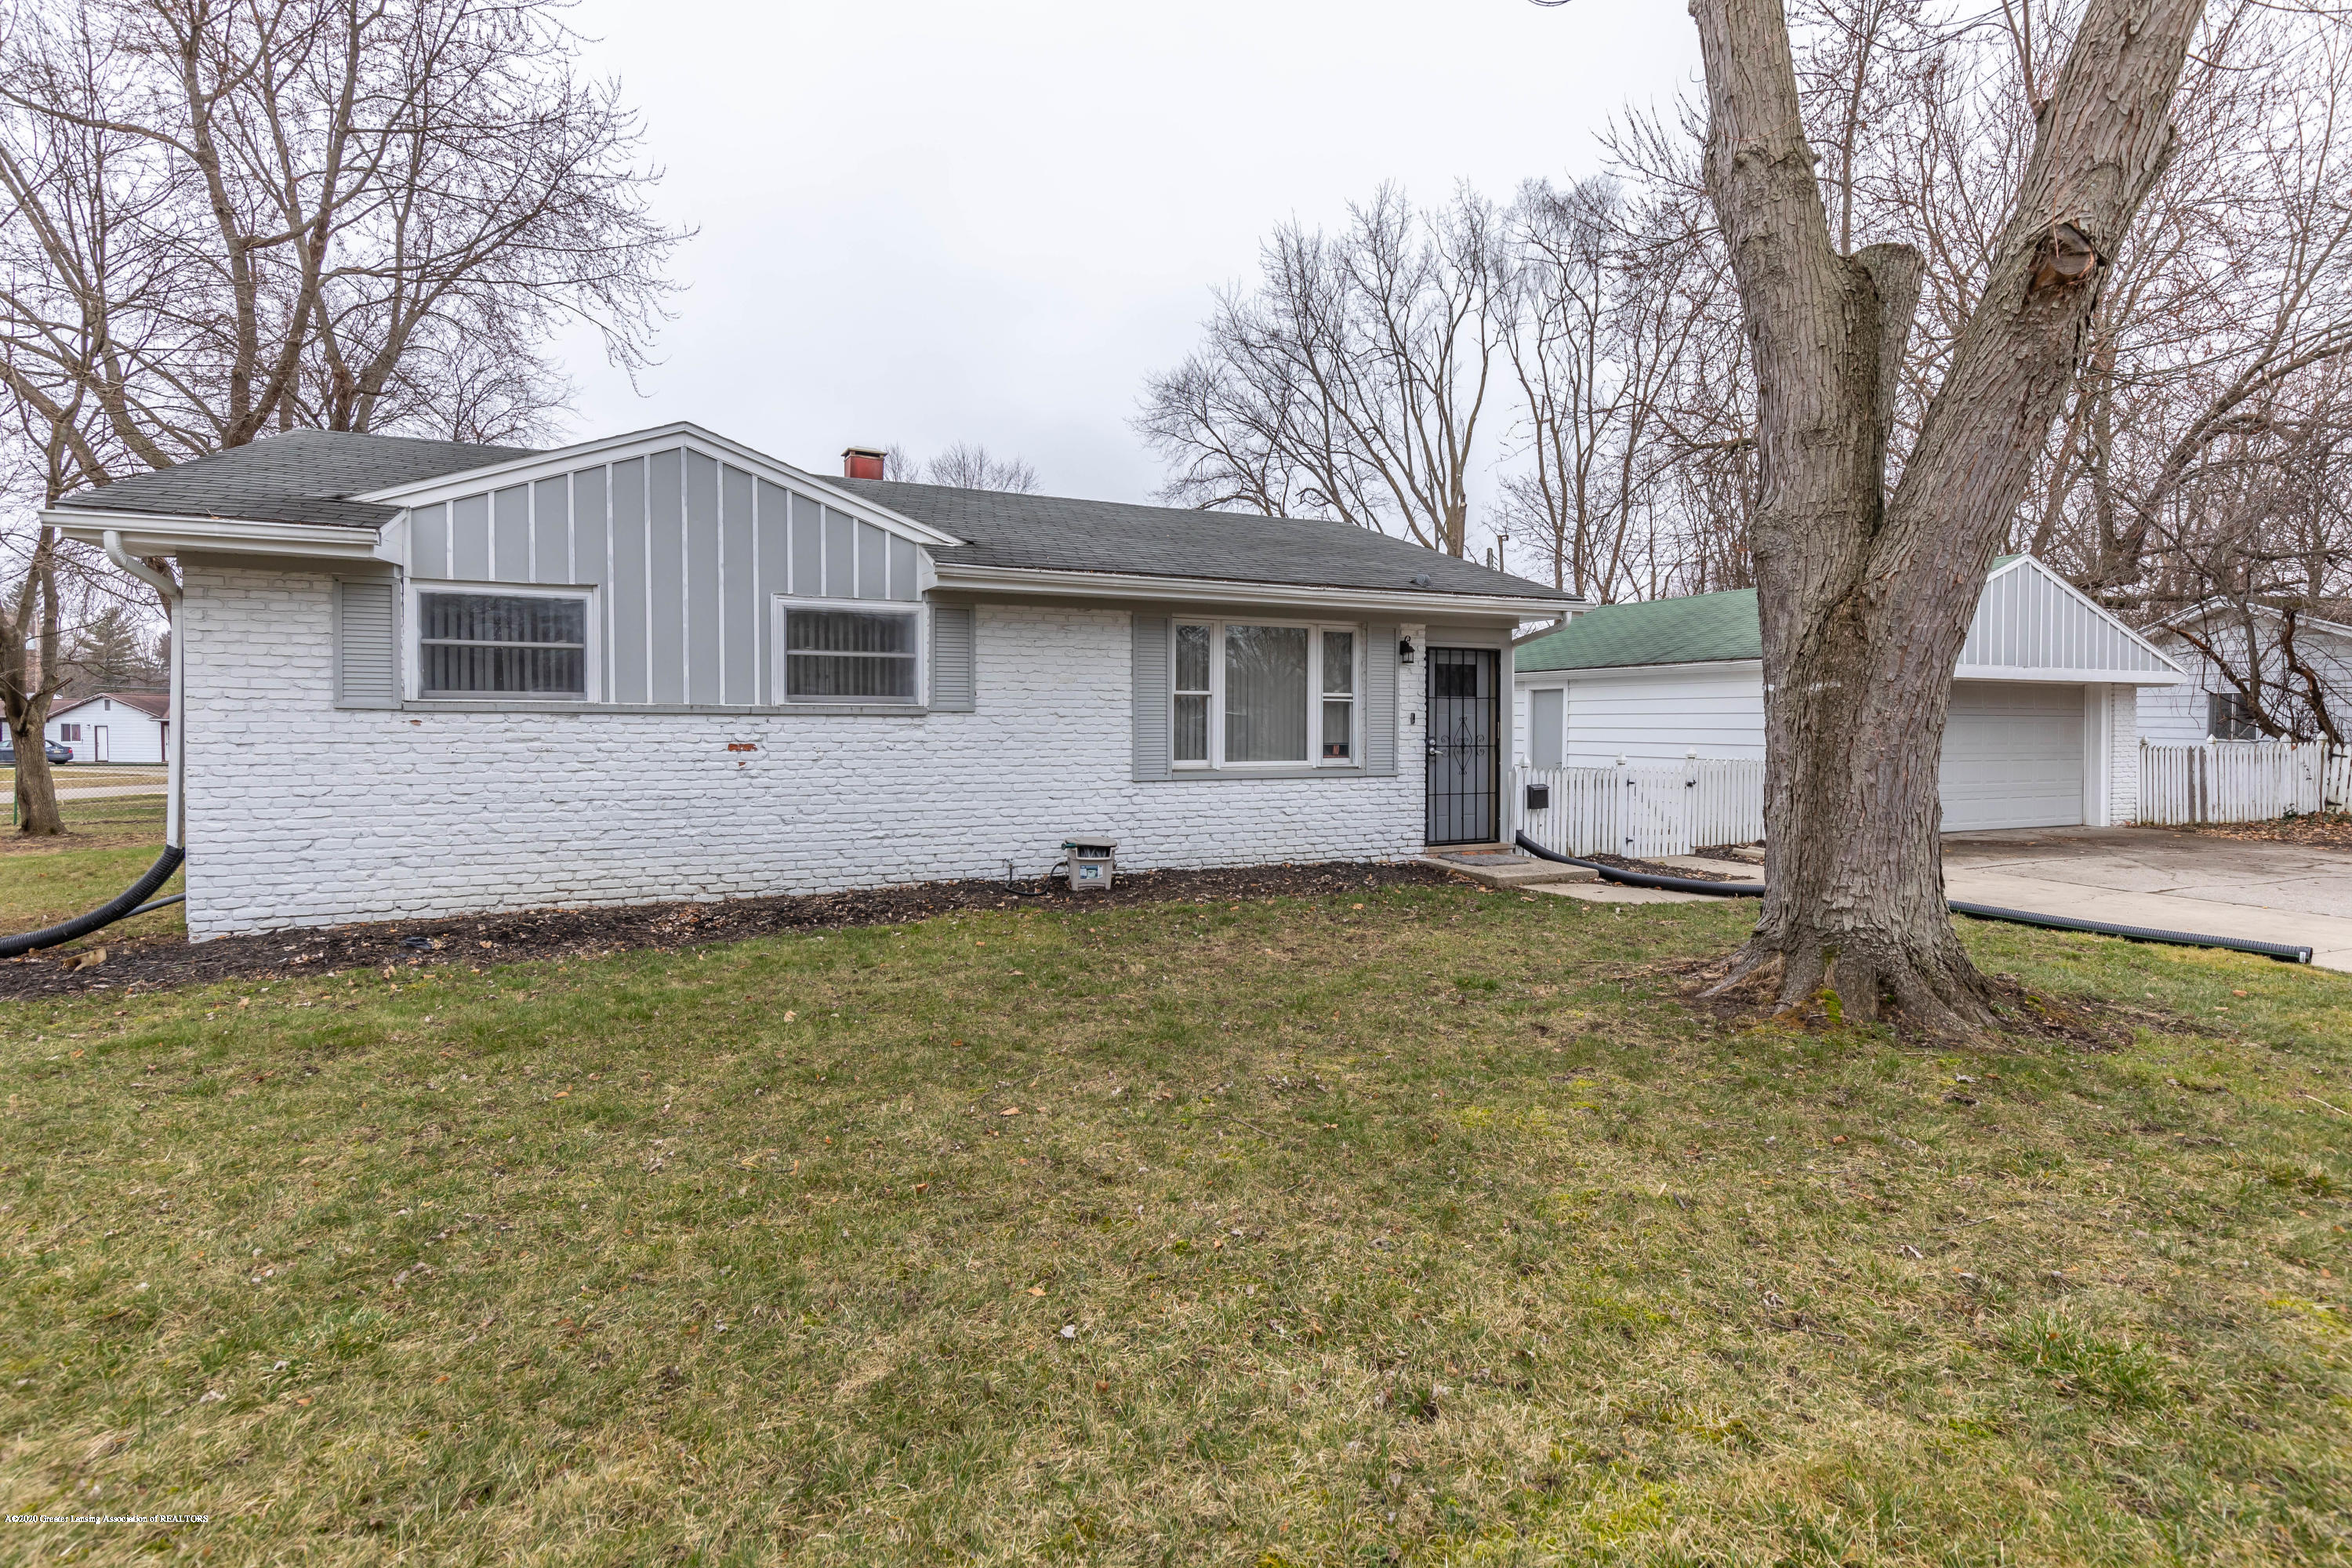 3924 Wedgewood Dr - Brick Front - 2